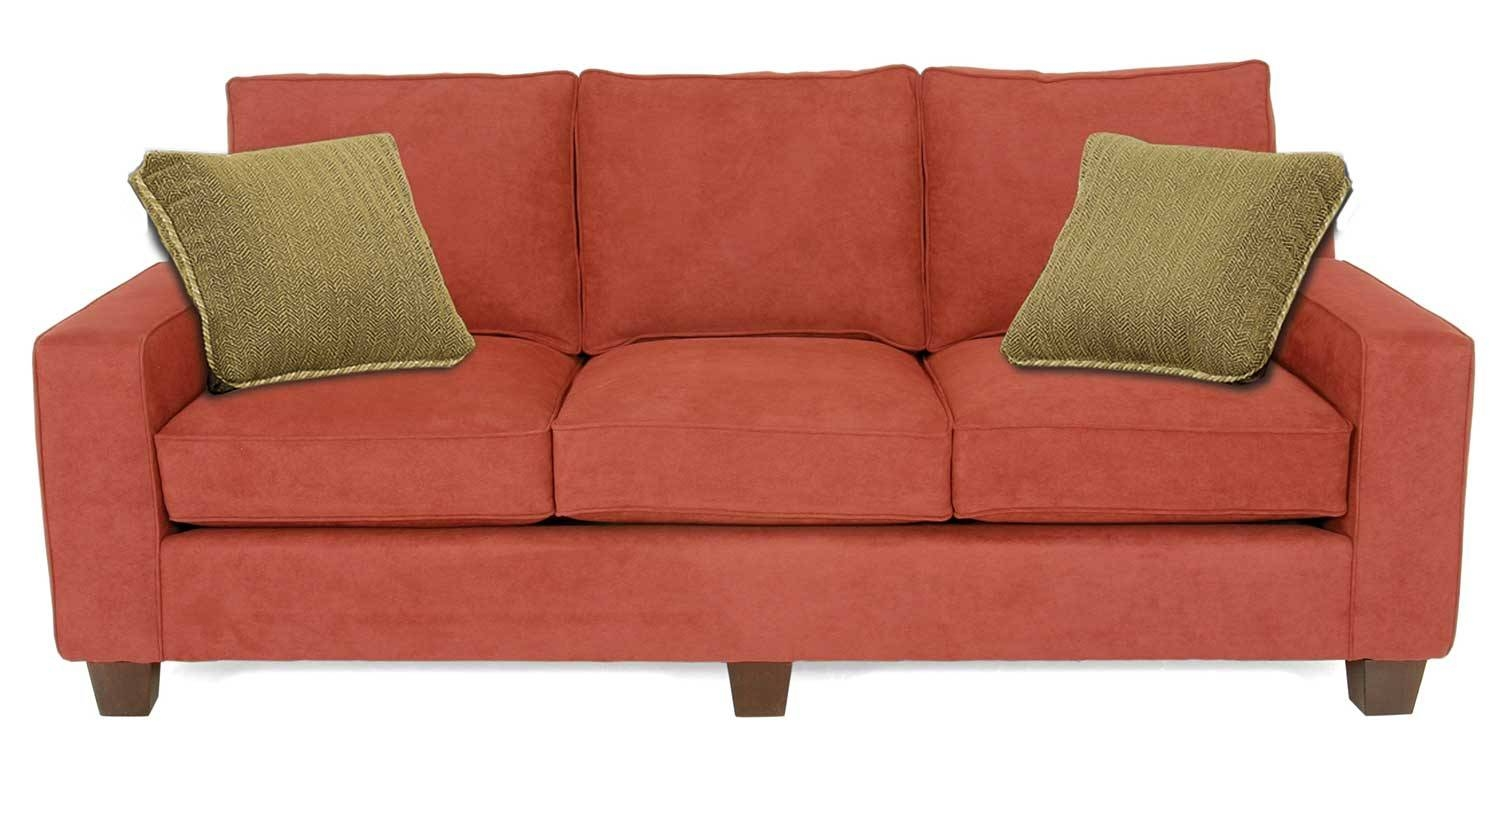 circular sofa chair buy covers for weddings wholesale circle furniture sofas review